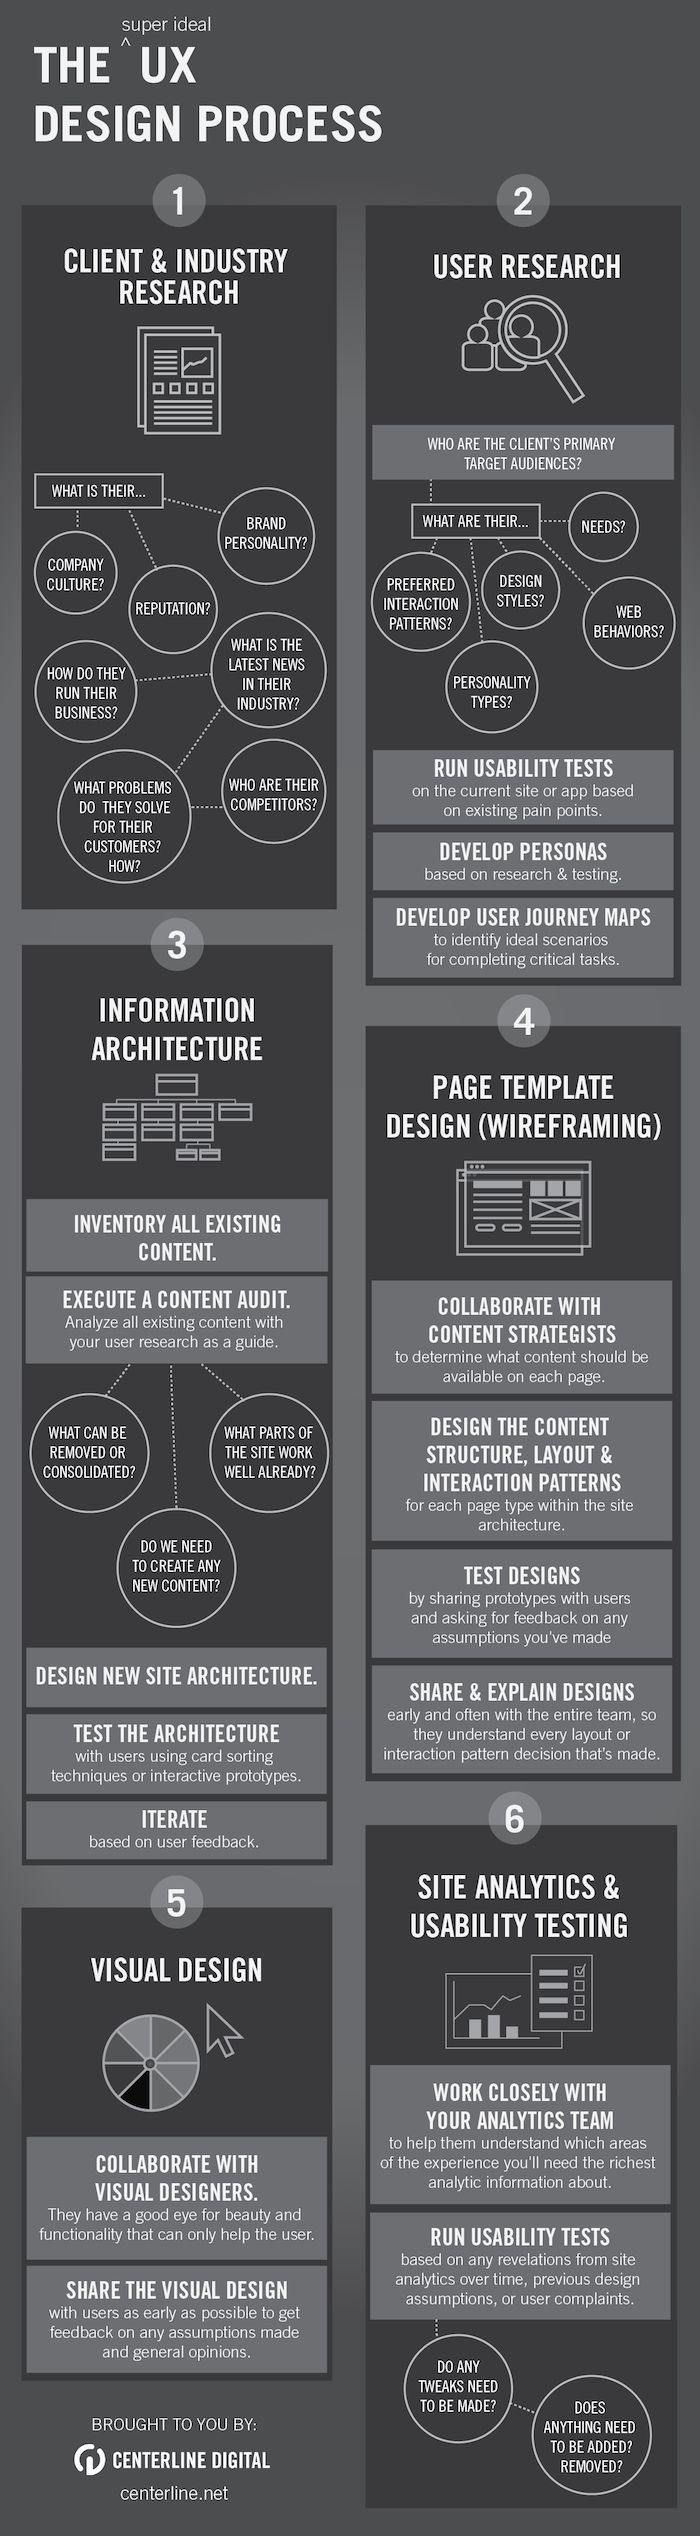 User Experience Design Process [INFOGRAPHIC] #ux #userexperience